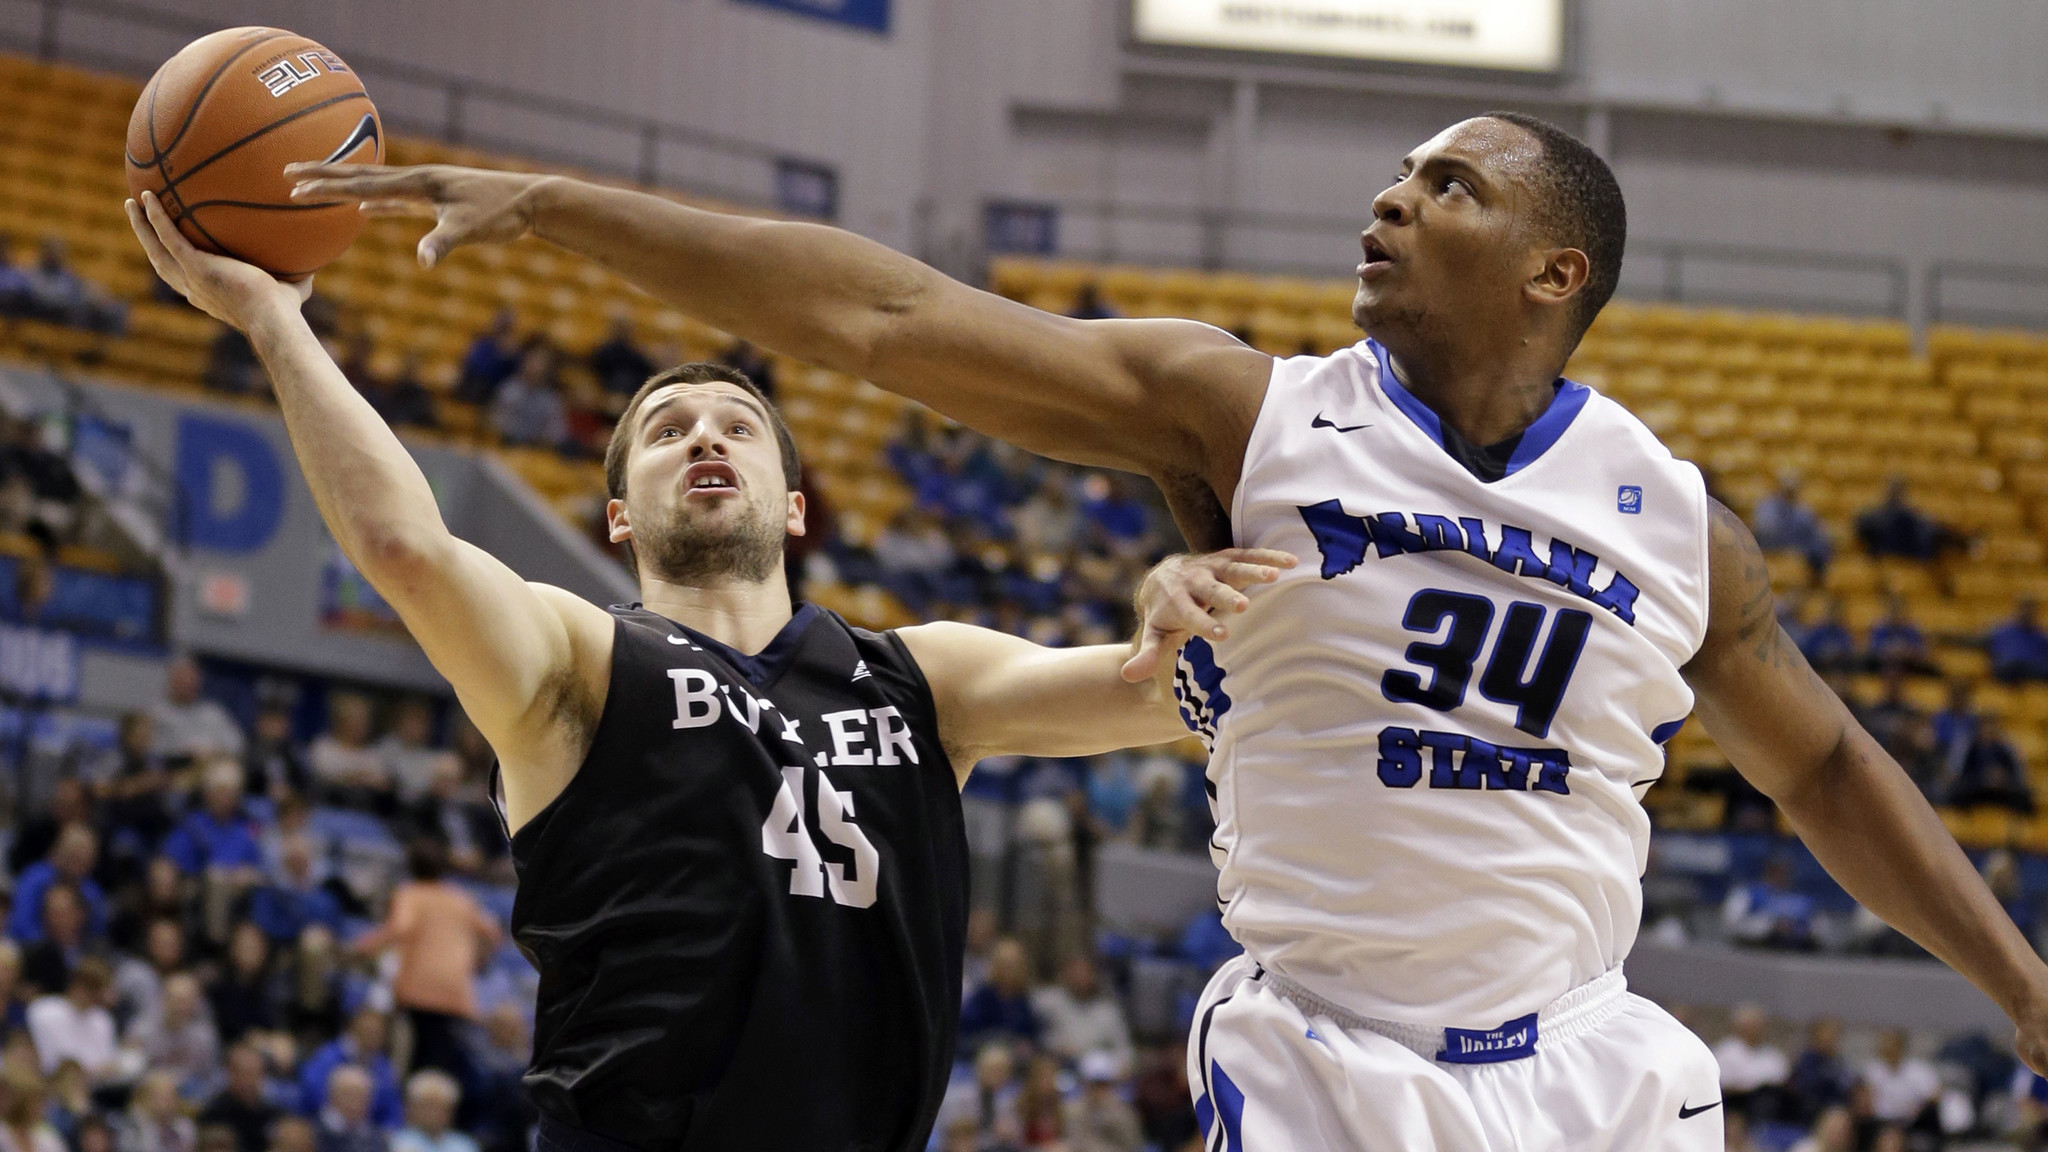 College basketball indiana state upsets no 16 butler colorado bests no 13 xavier la times